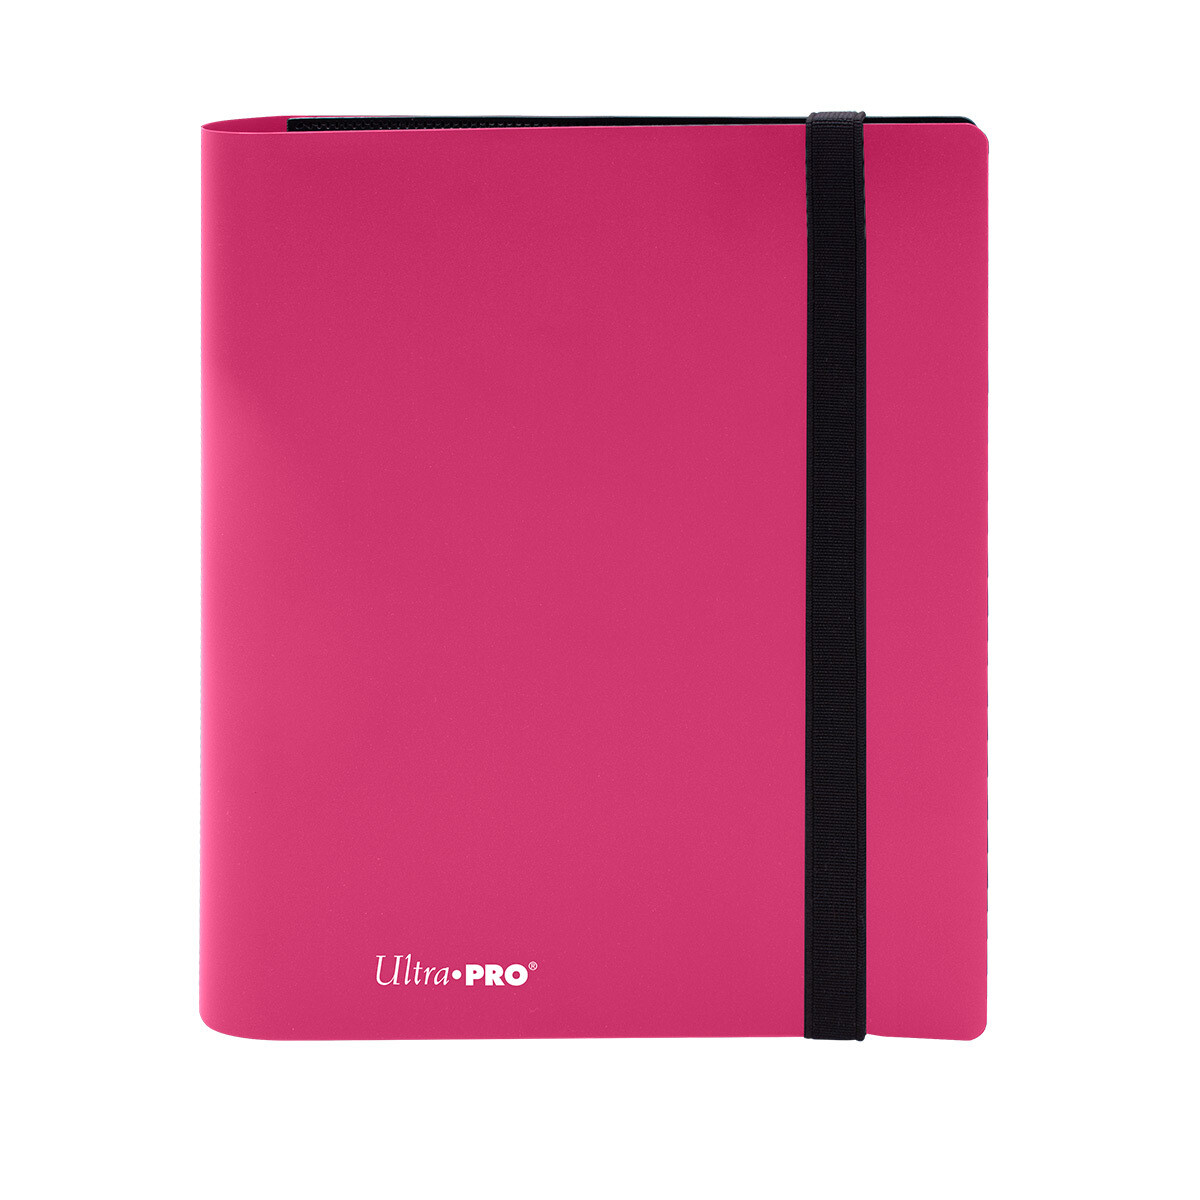 Binder: Ultra Pro: 4 Pocket Eclipse Hot Pink